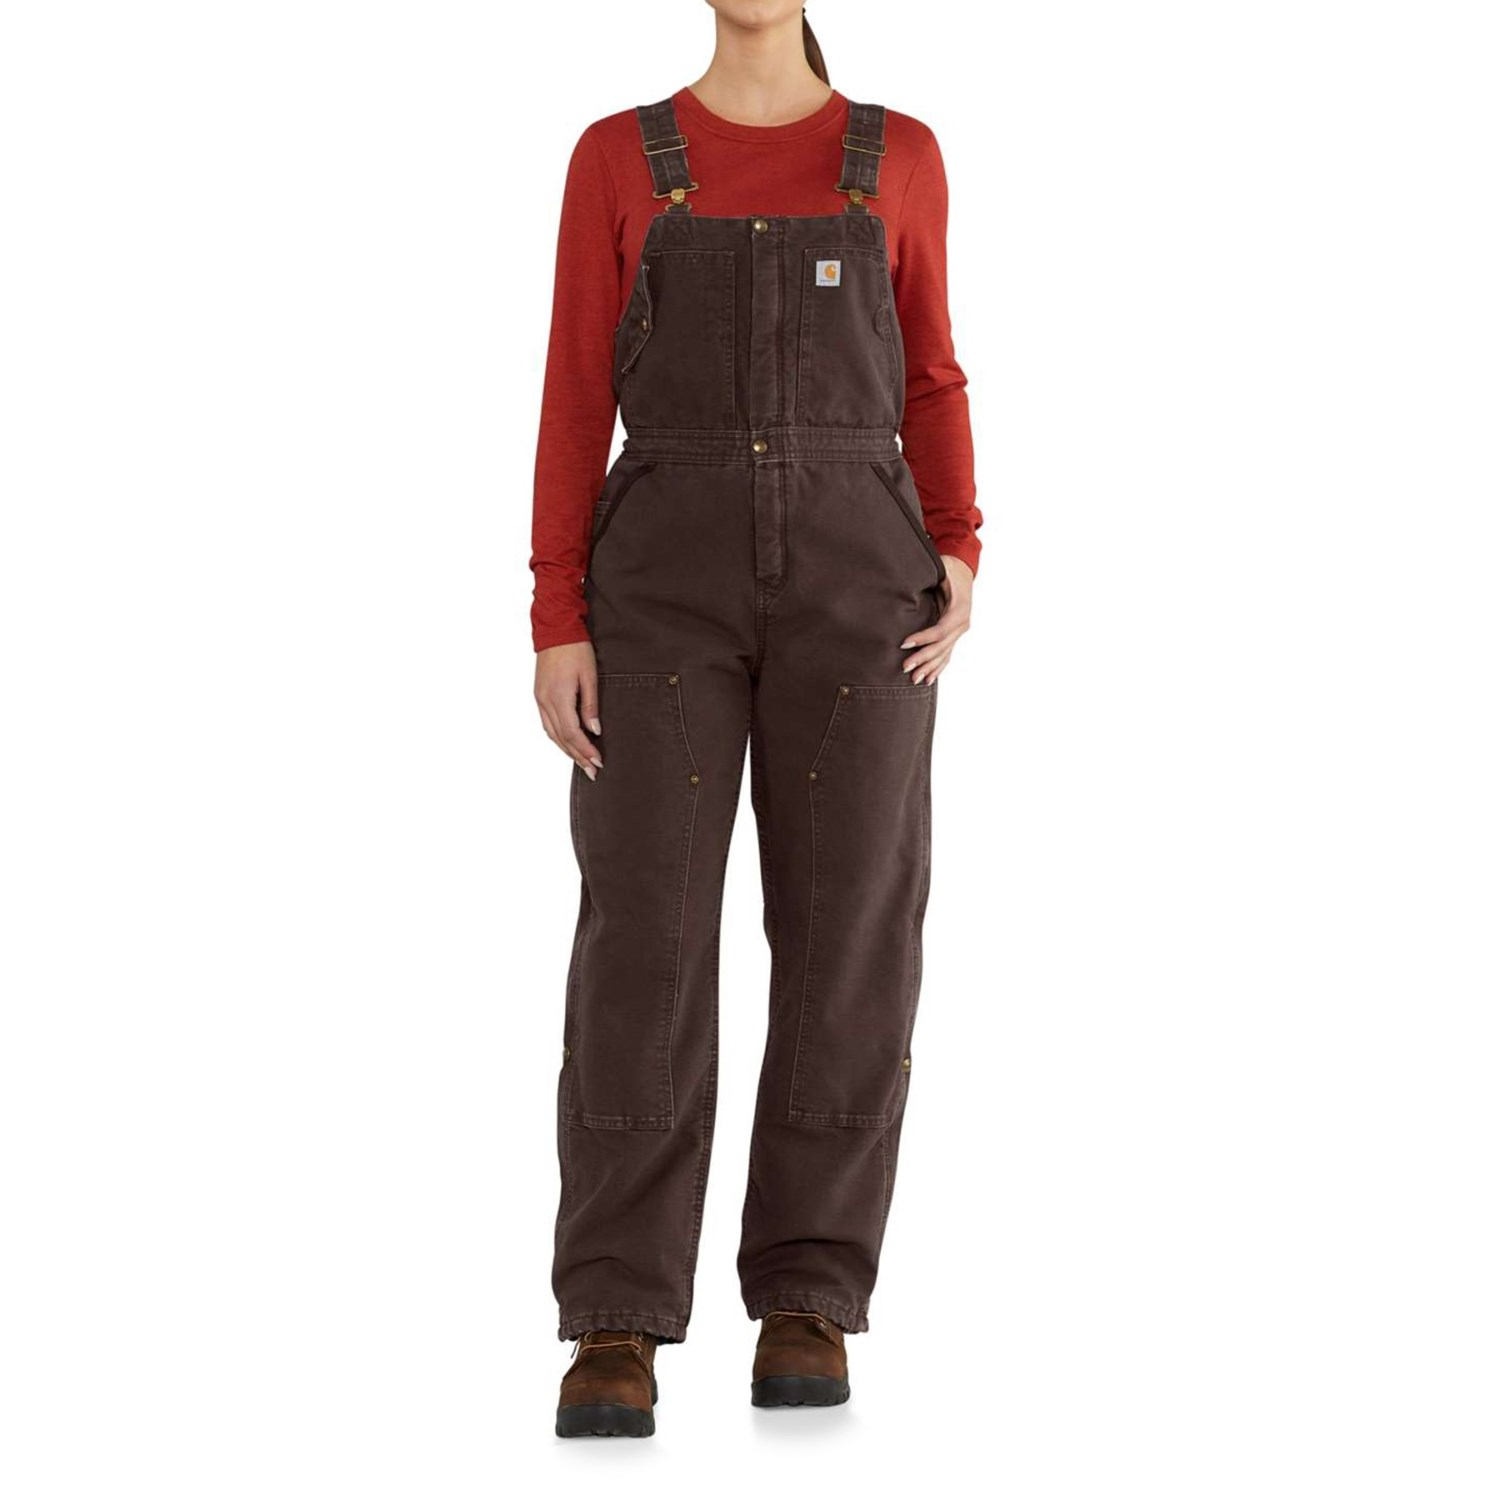 1600cdf04 Carhartt 102743 Weathered Duck Wildwood Bib Overalls - Insulated, Factory  2nds (For Women)